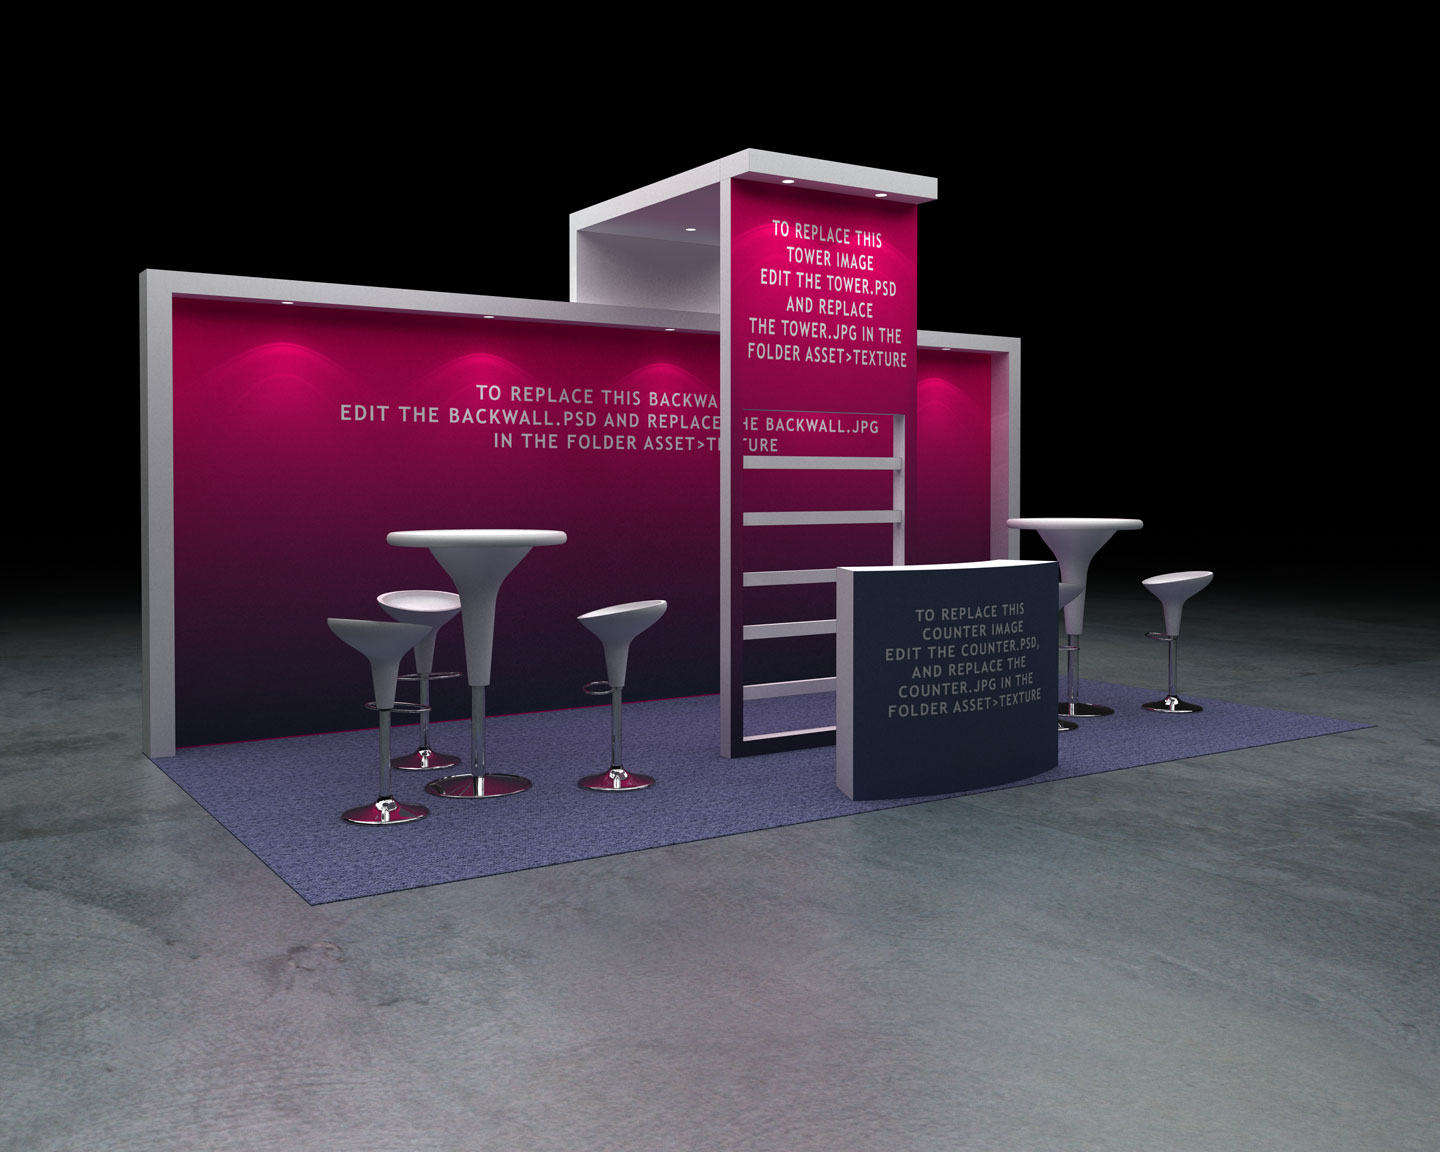 Exhibition Booth Psd : Exhibition booth perimeter by brakster docean